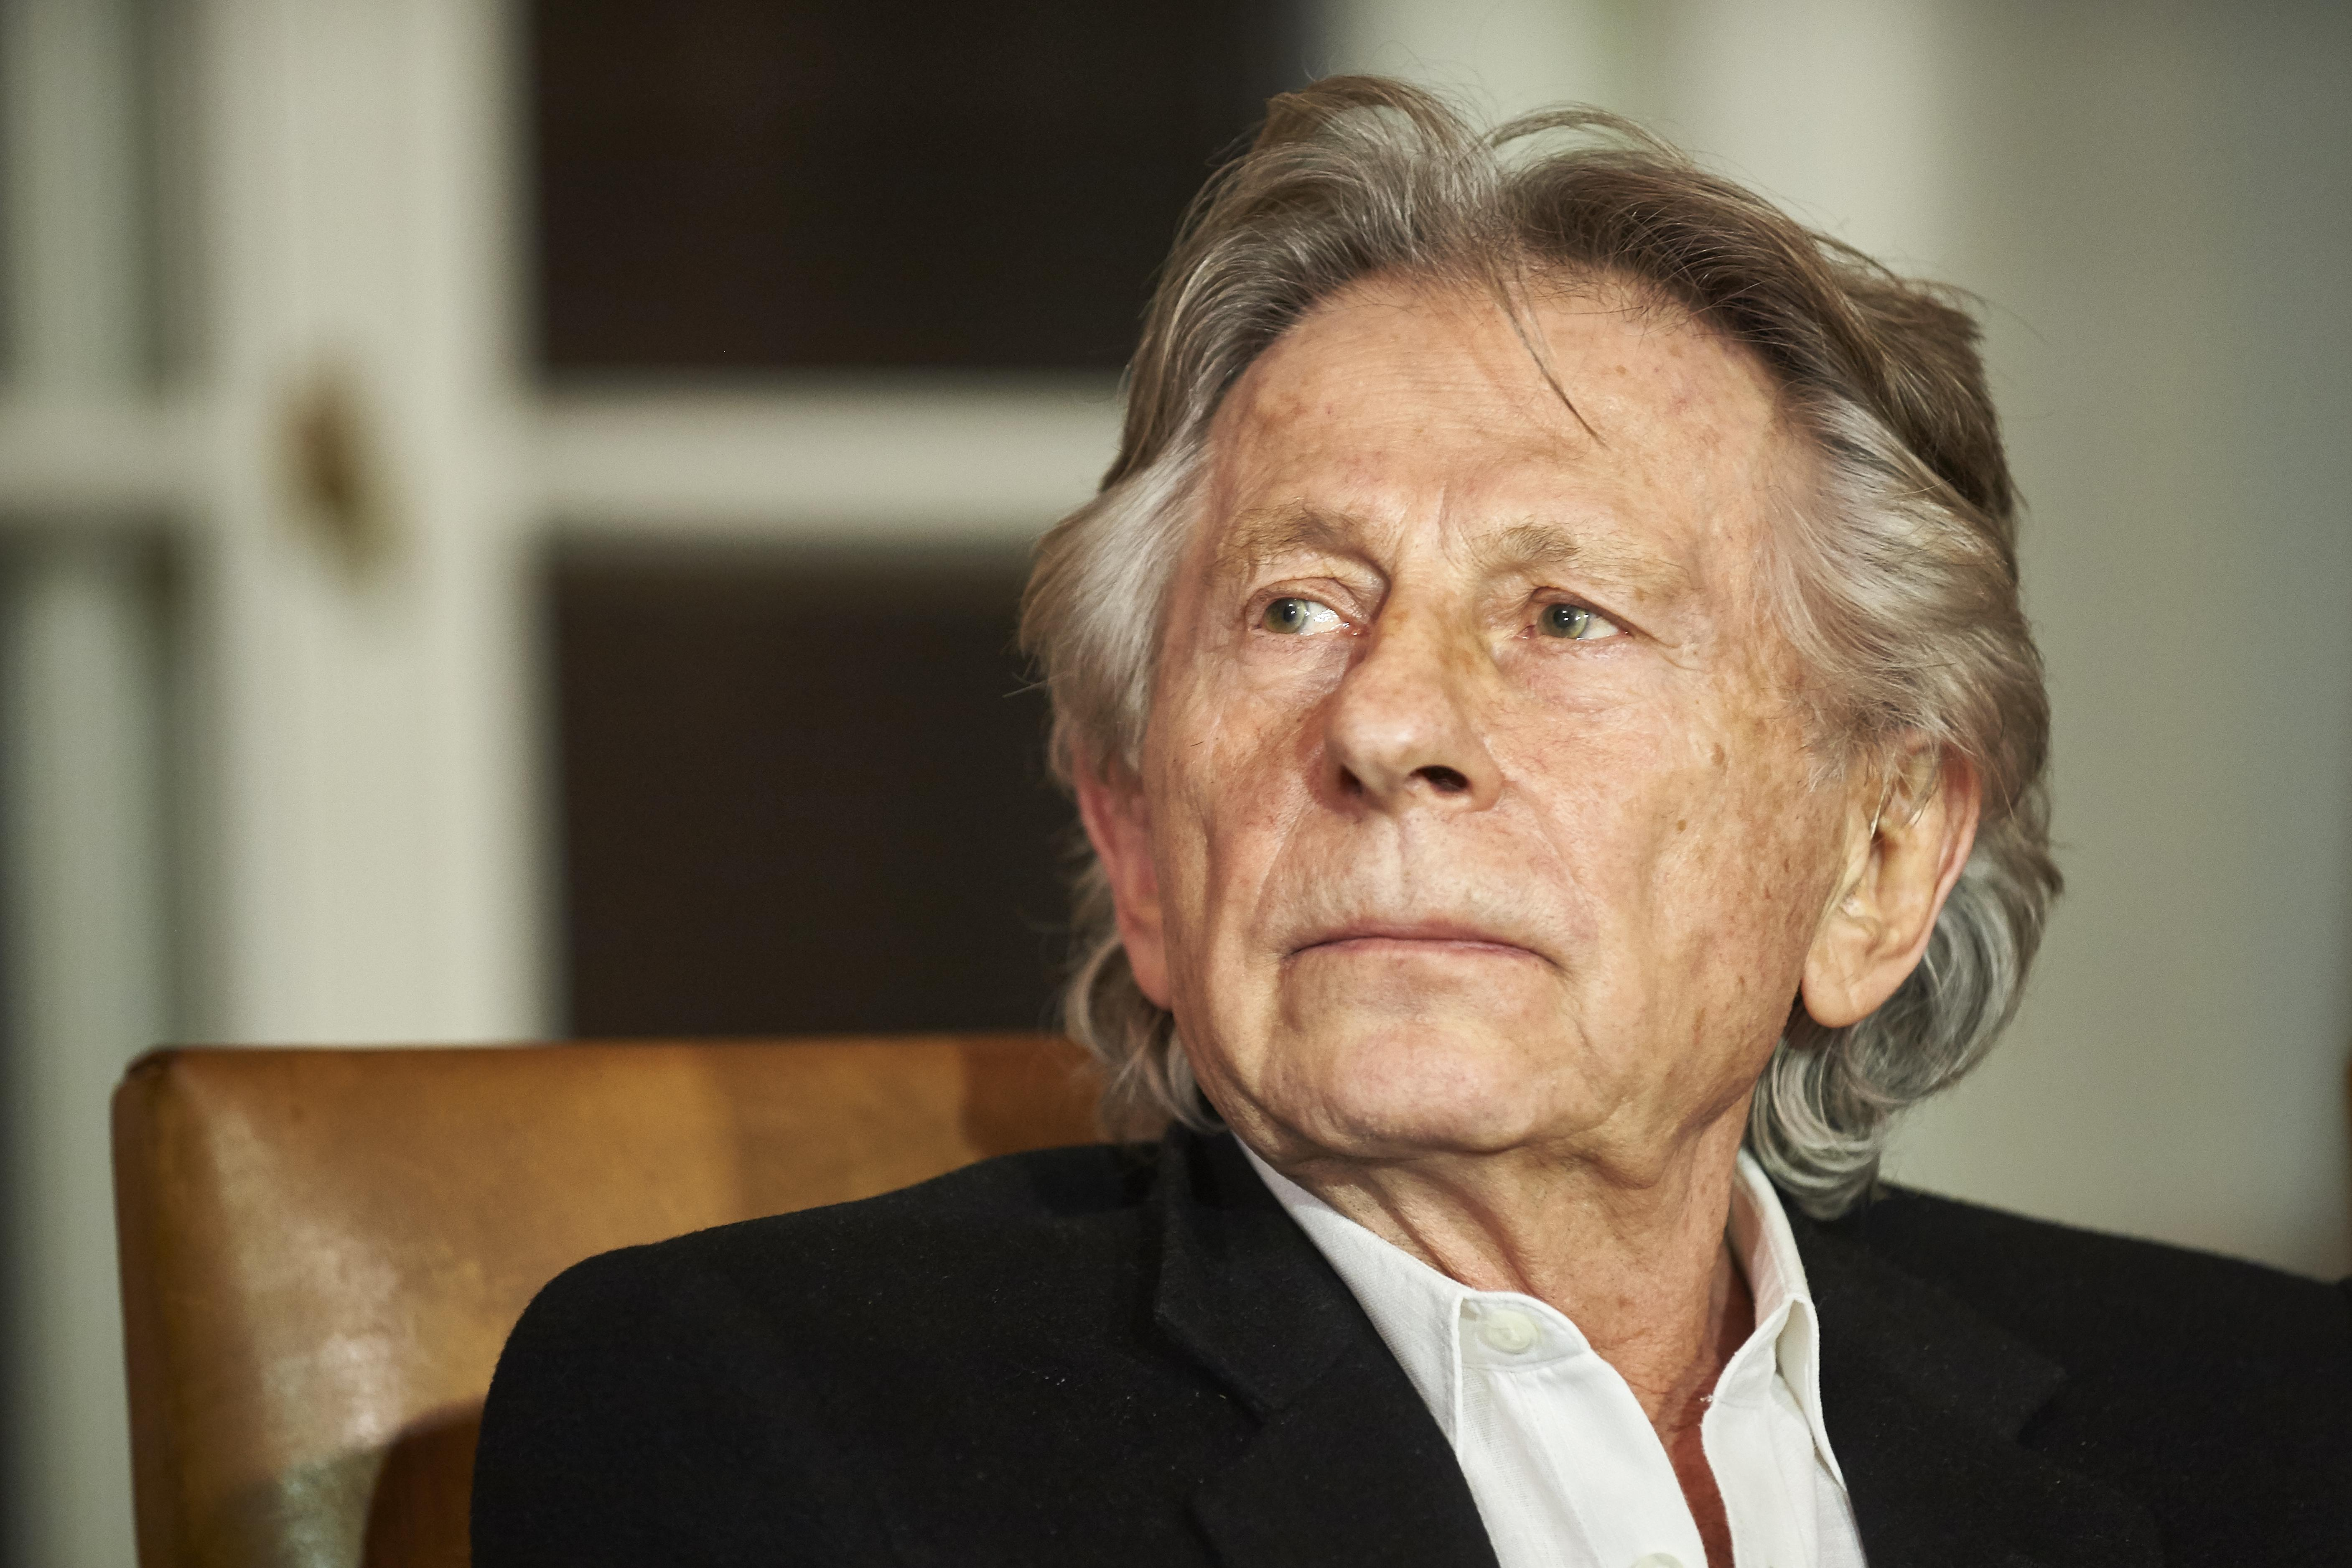 Ruling on Polanski case within 90 days